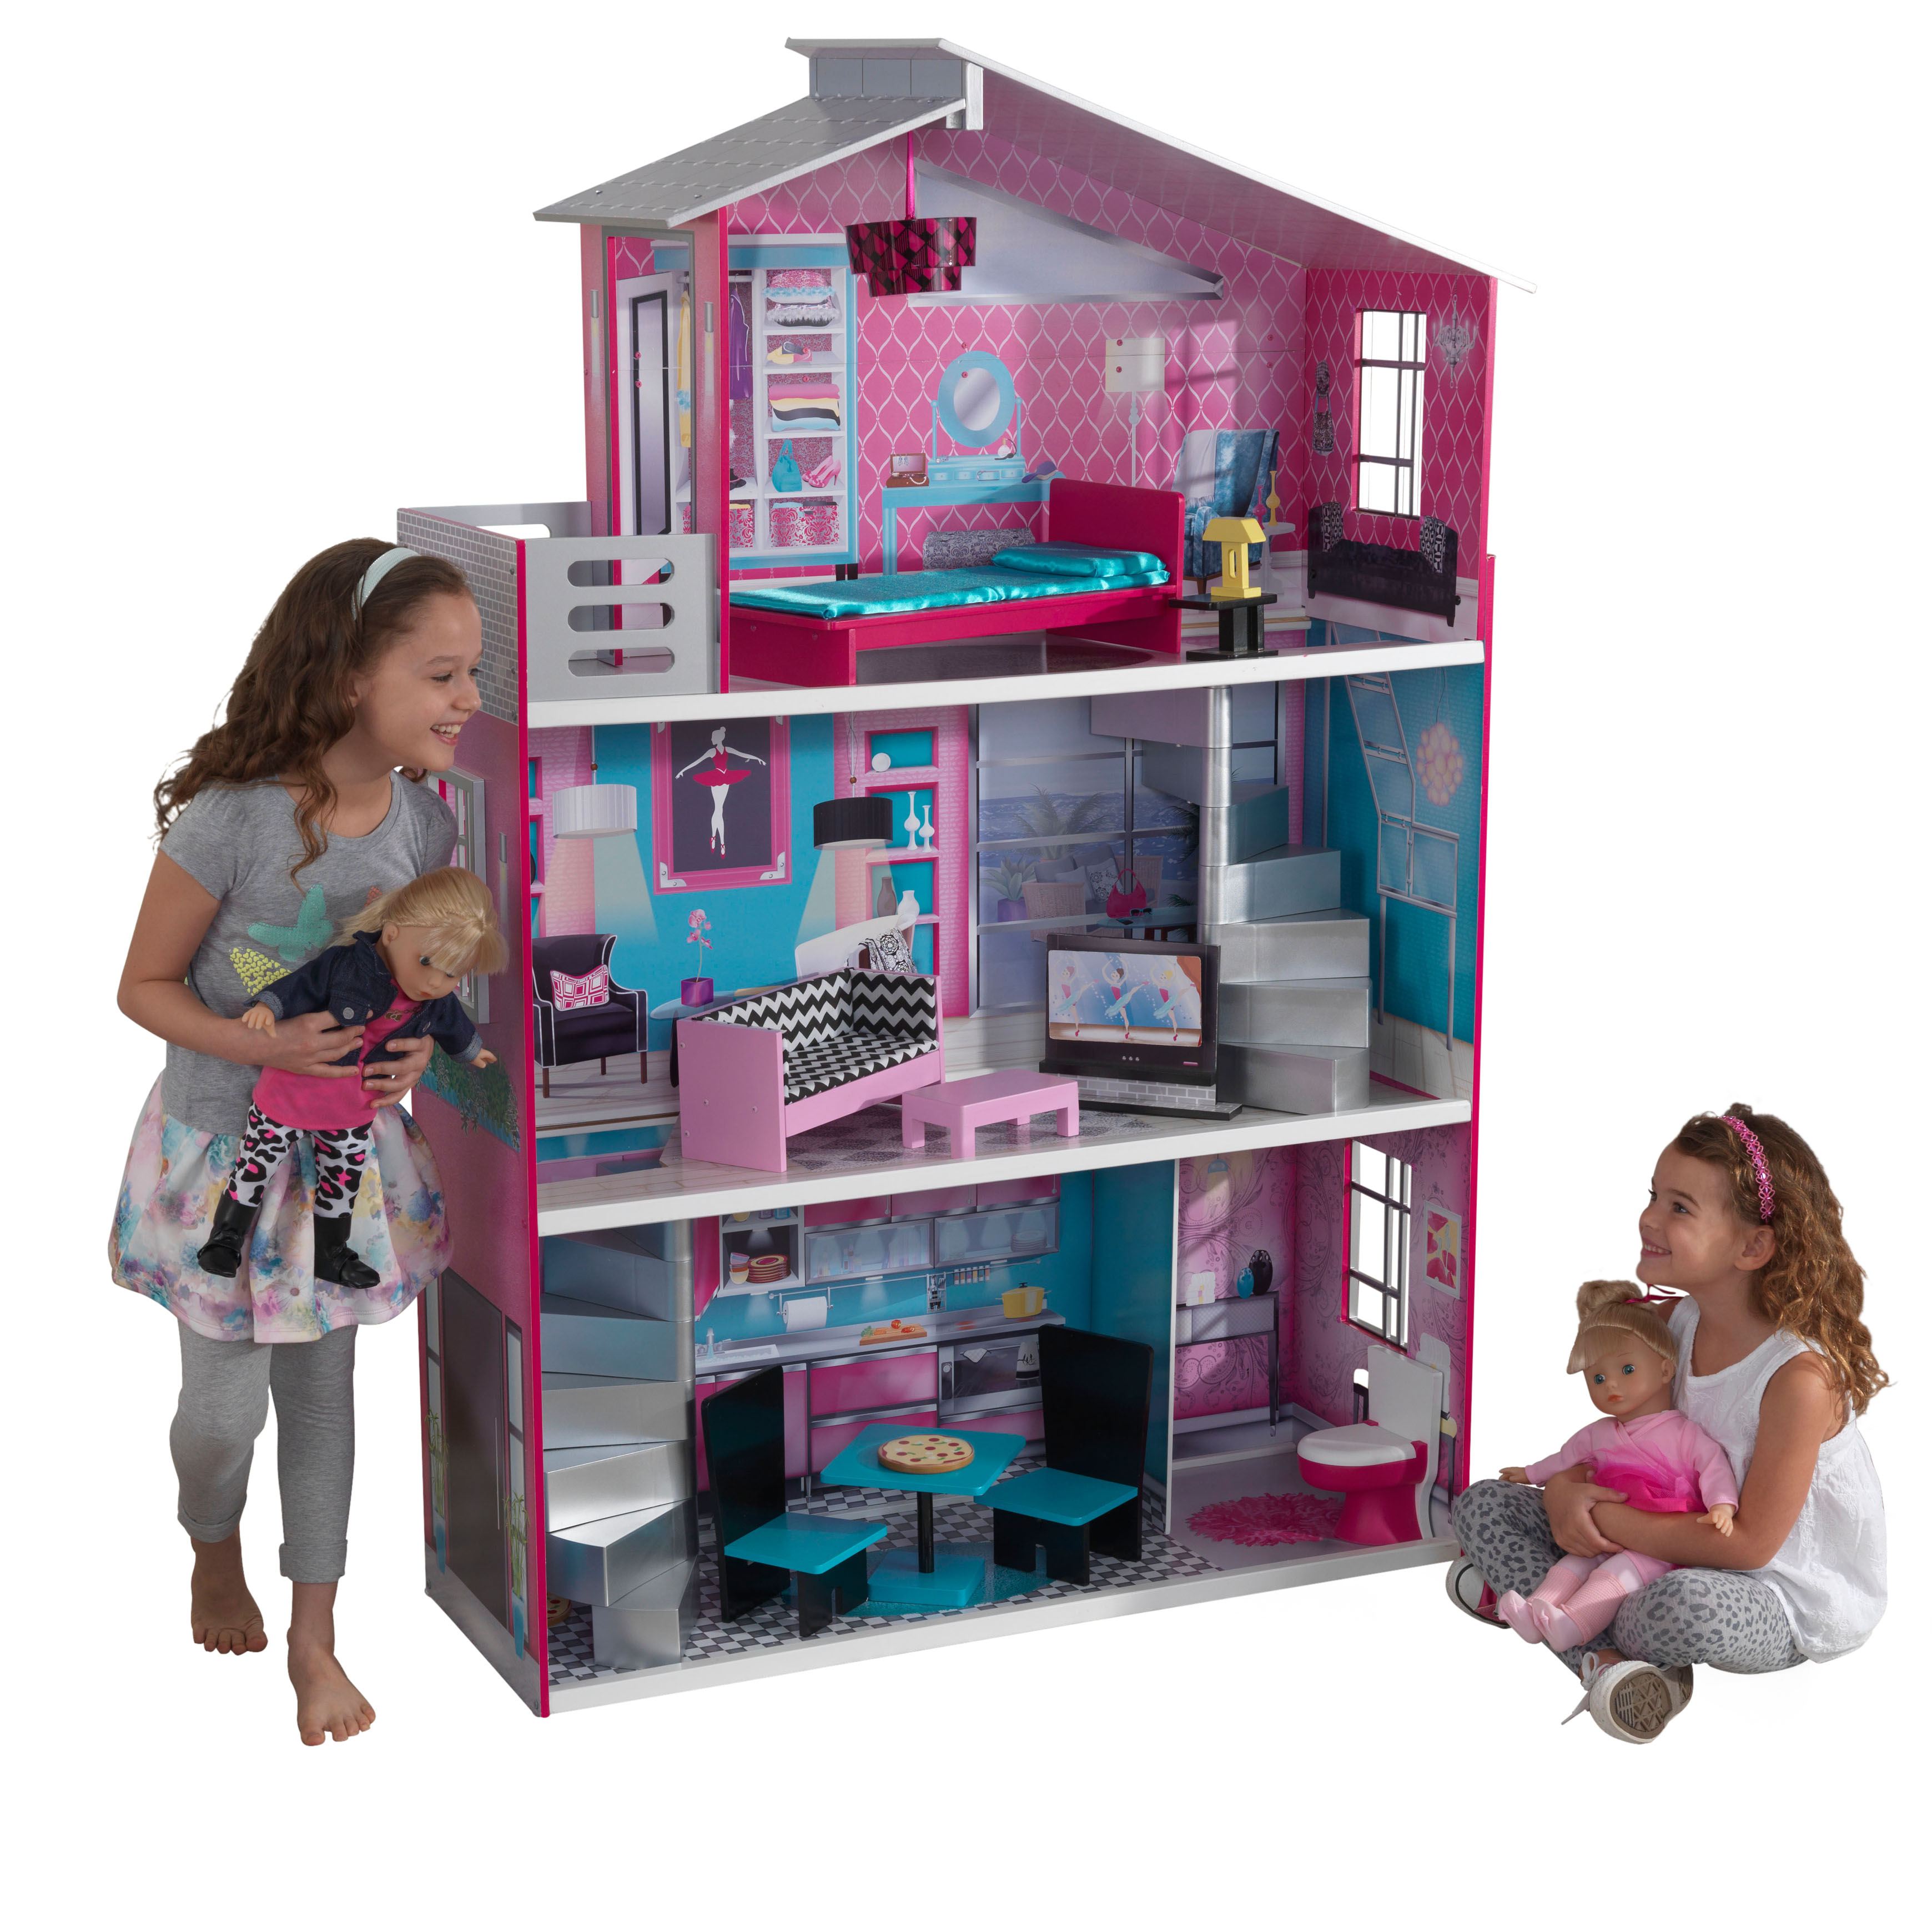 KidKraft Wooden Breanna Dollhouse for 18-Inch Dolls with 12-Piece Accessories